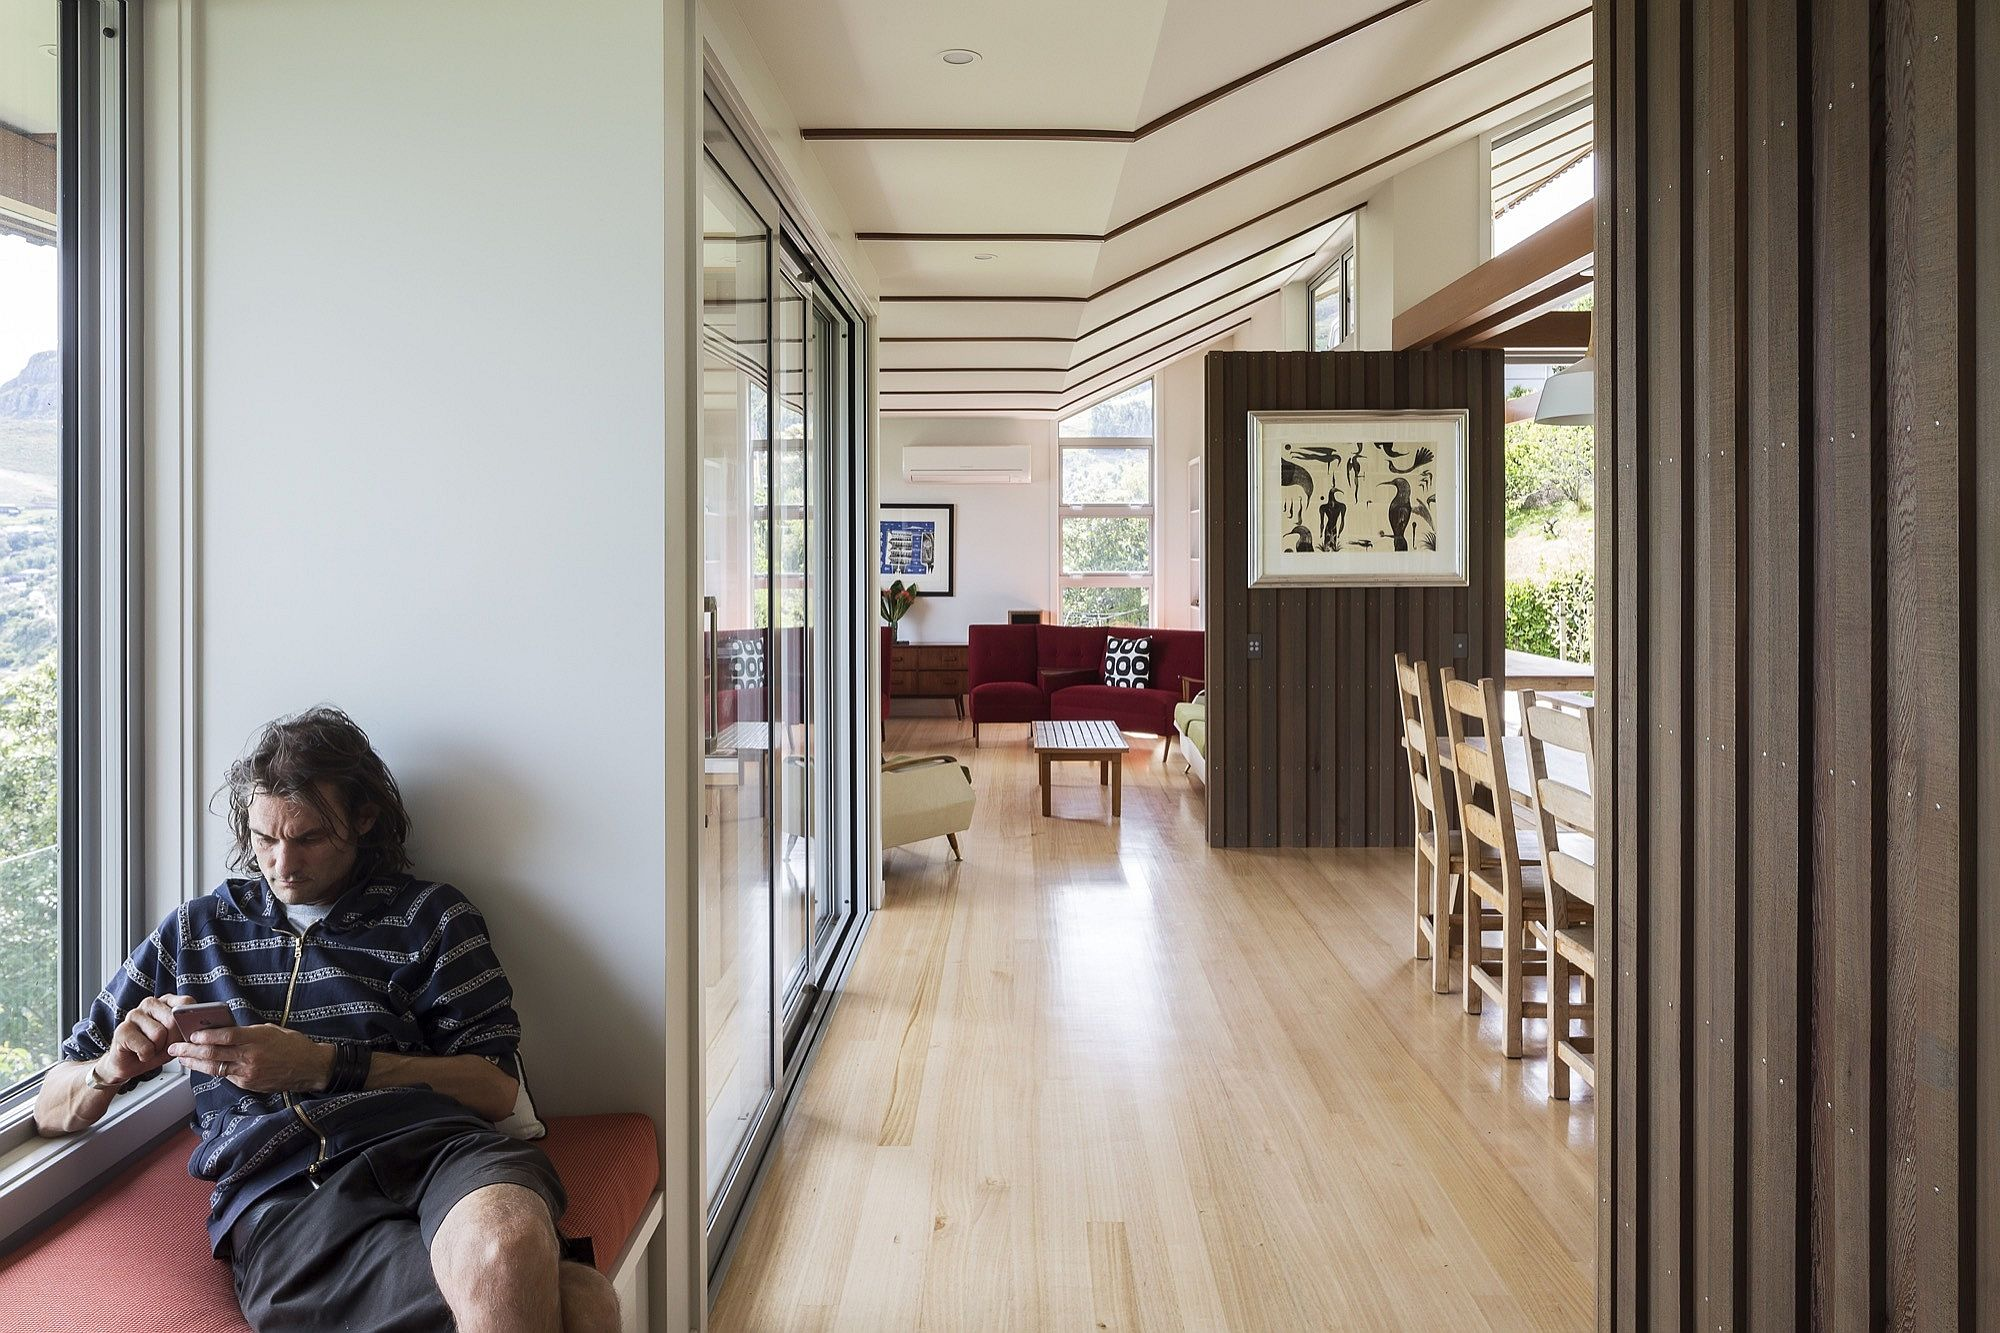 Simple design and a series of large windows open up the house to the view outside